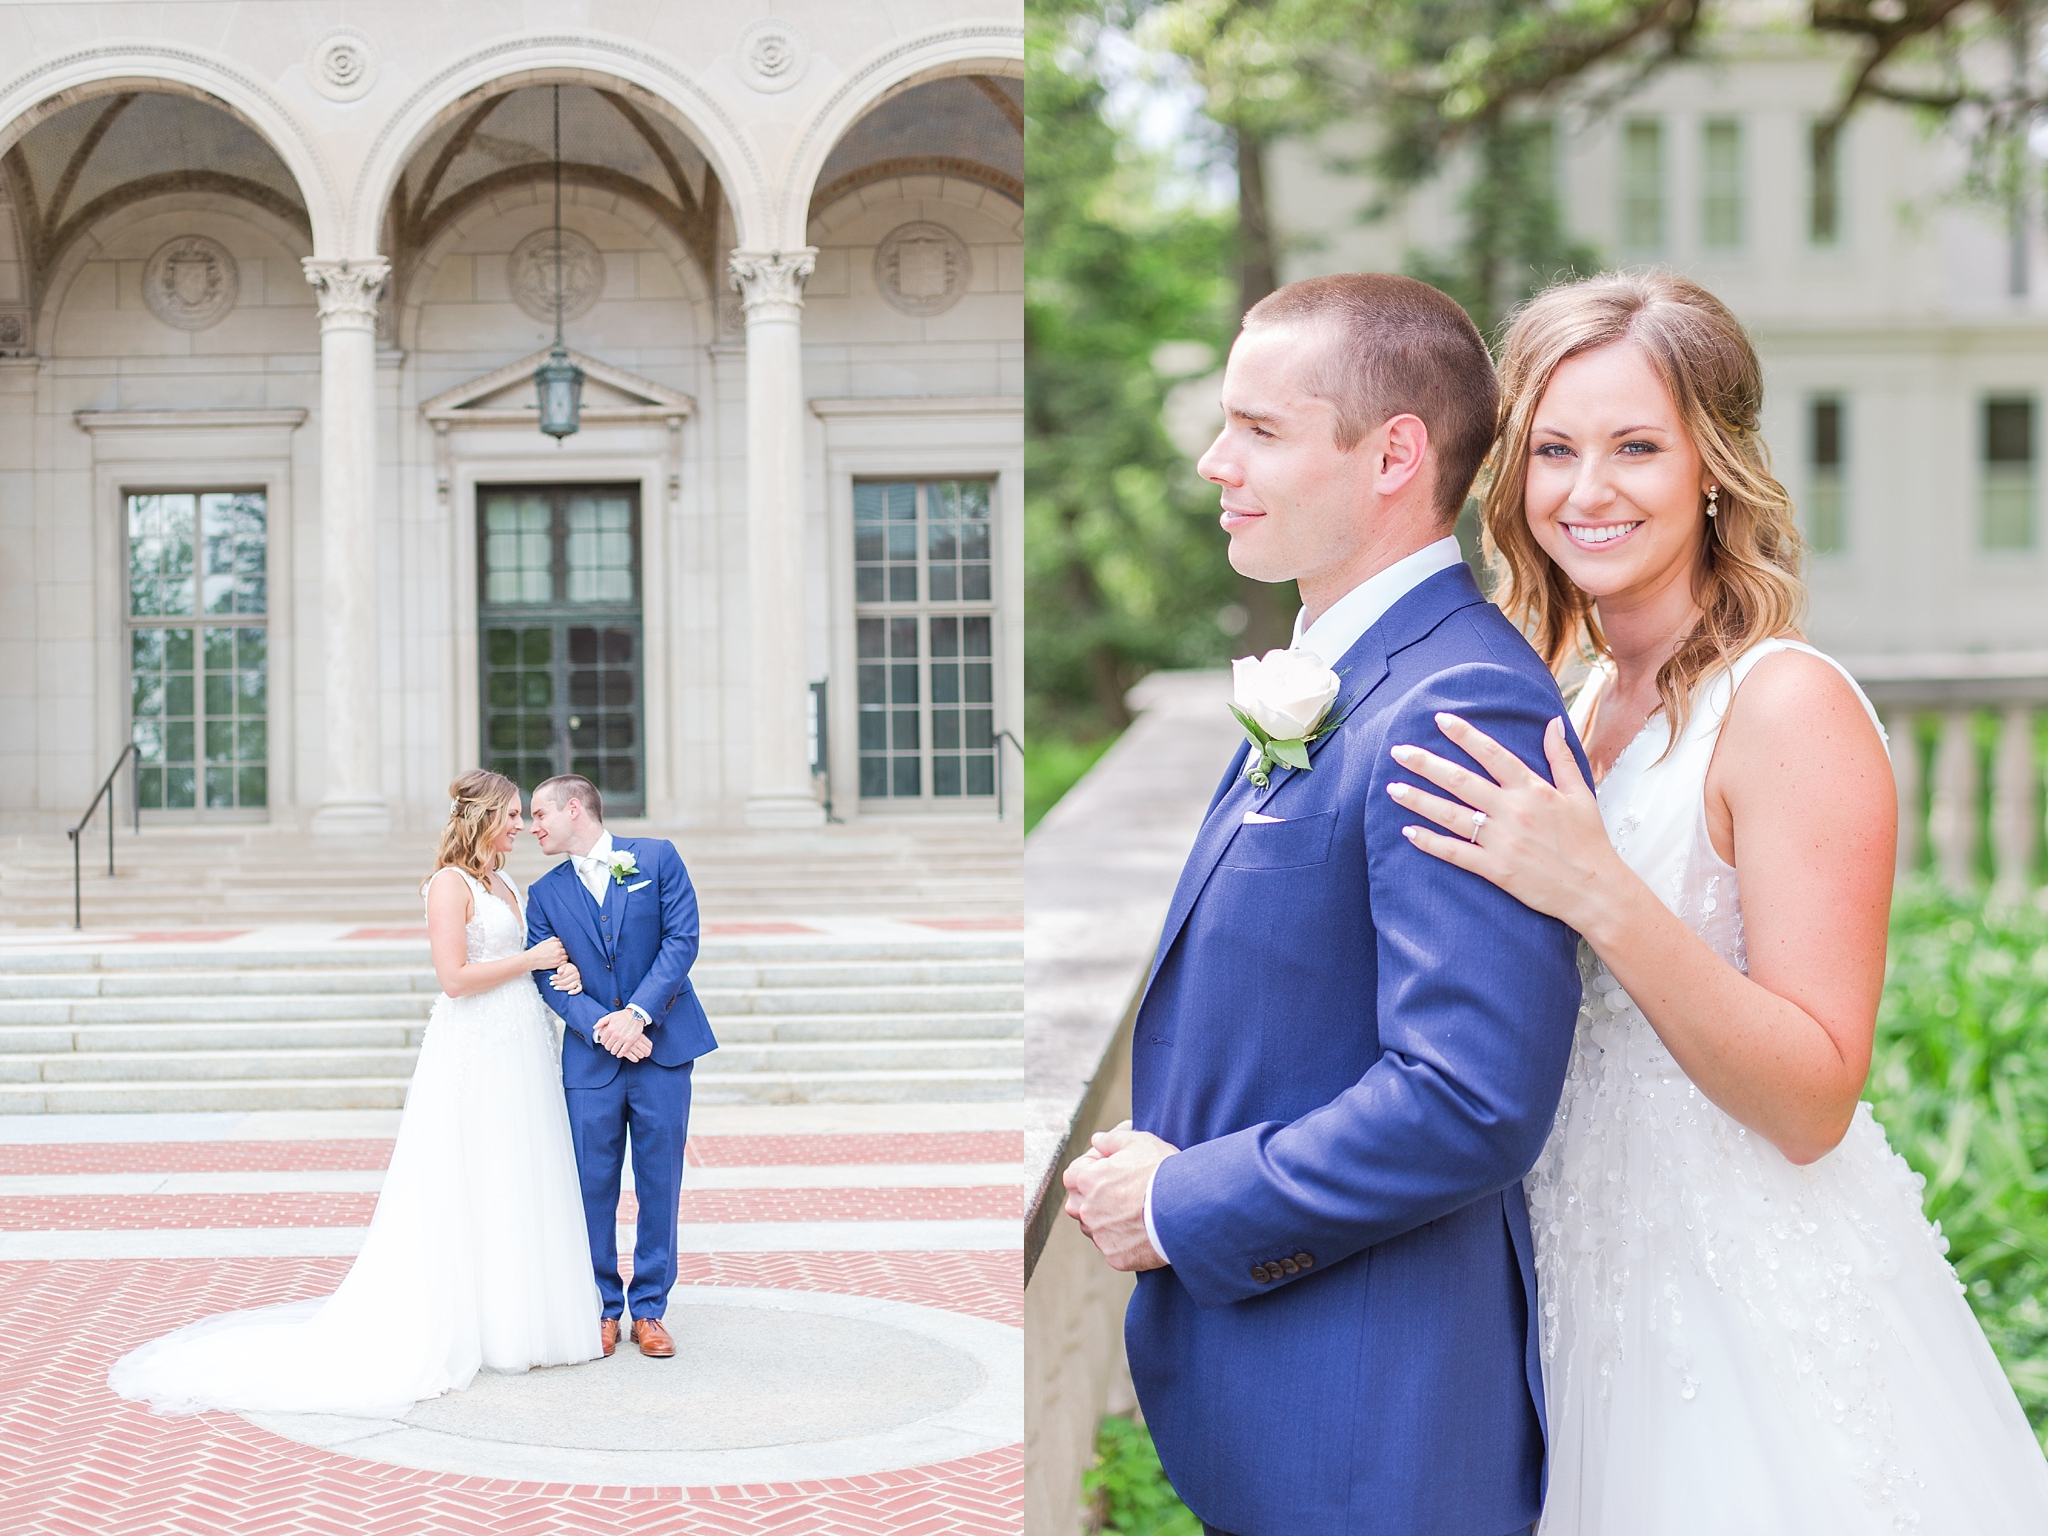 joyful-candid-laid-back-wedding-photos-in-ann-arbor-michigan-and-at-the-eagle-crest-golf-resort-by-courtney-carolyn-photography_0033.jpg